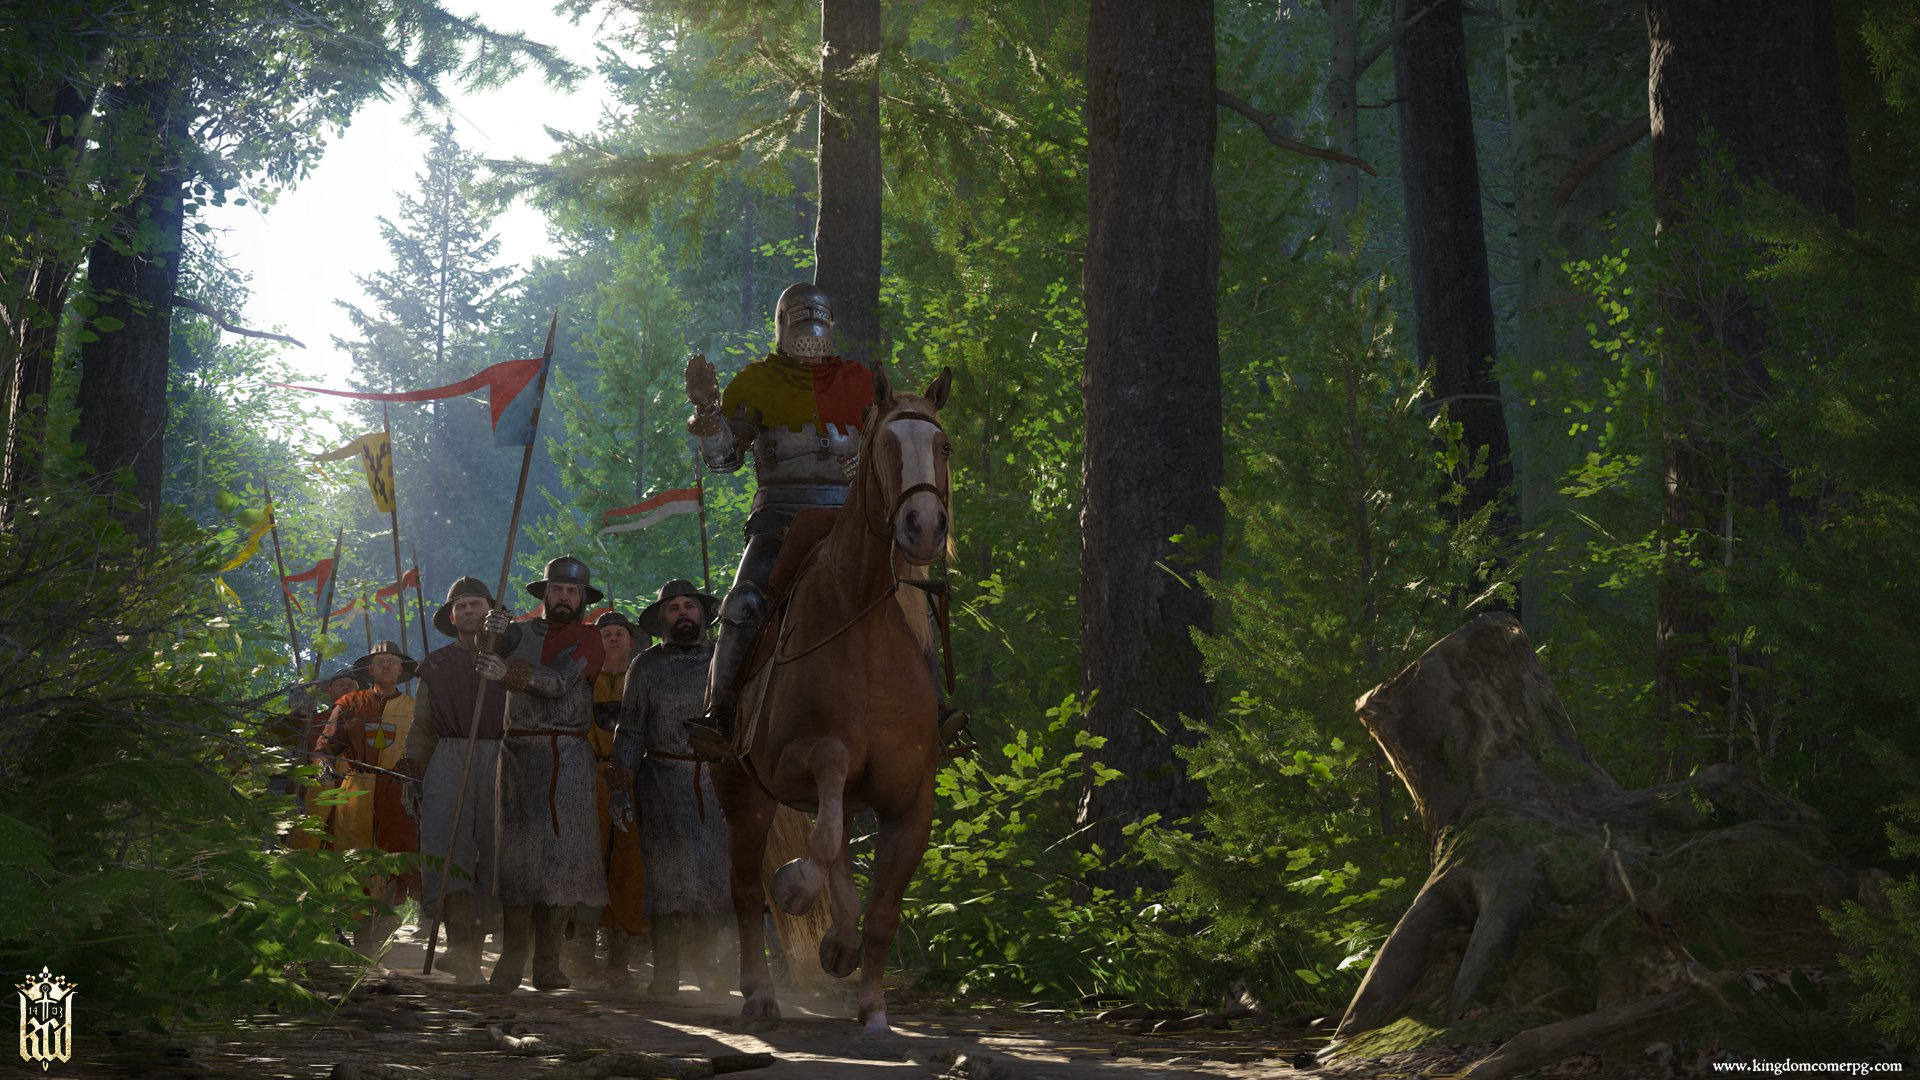 This Kingdom Come: Deliverance trailer should get you properly amped up screenshot